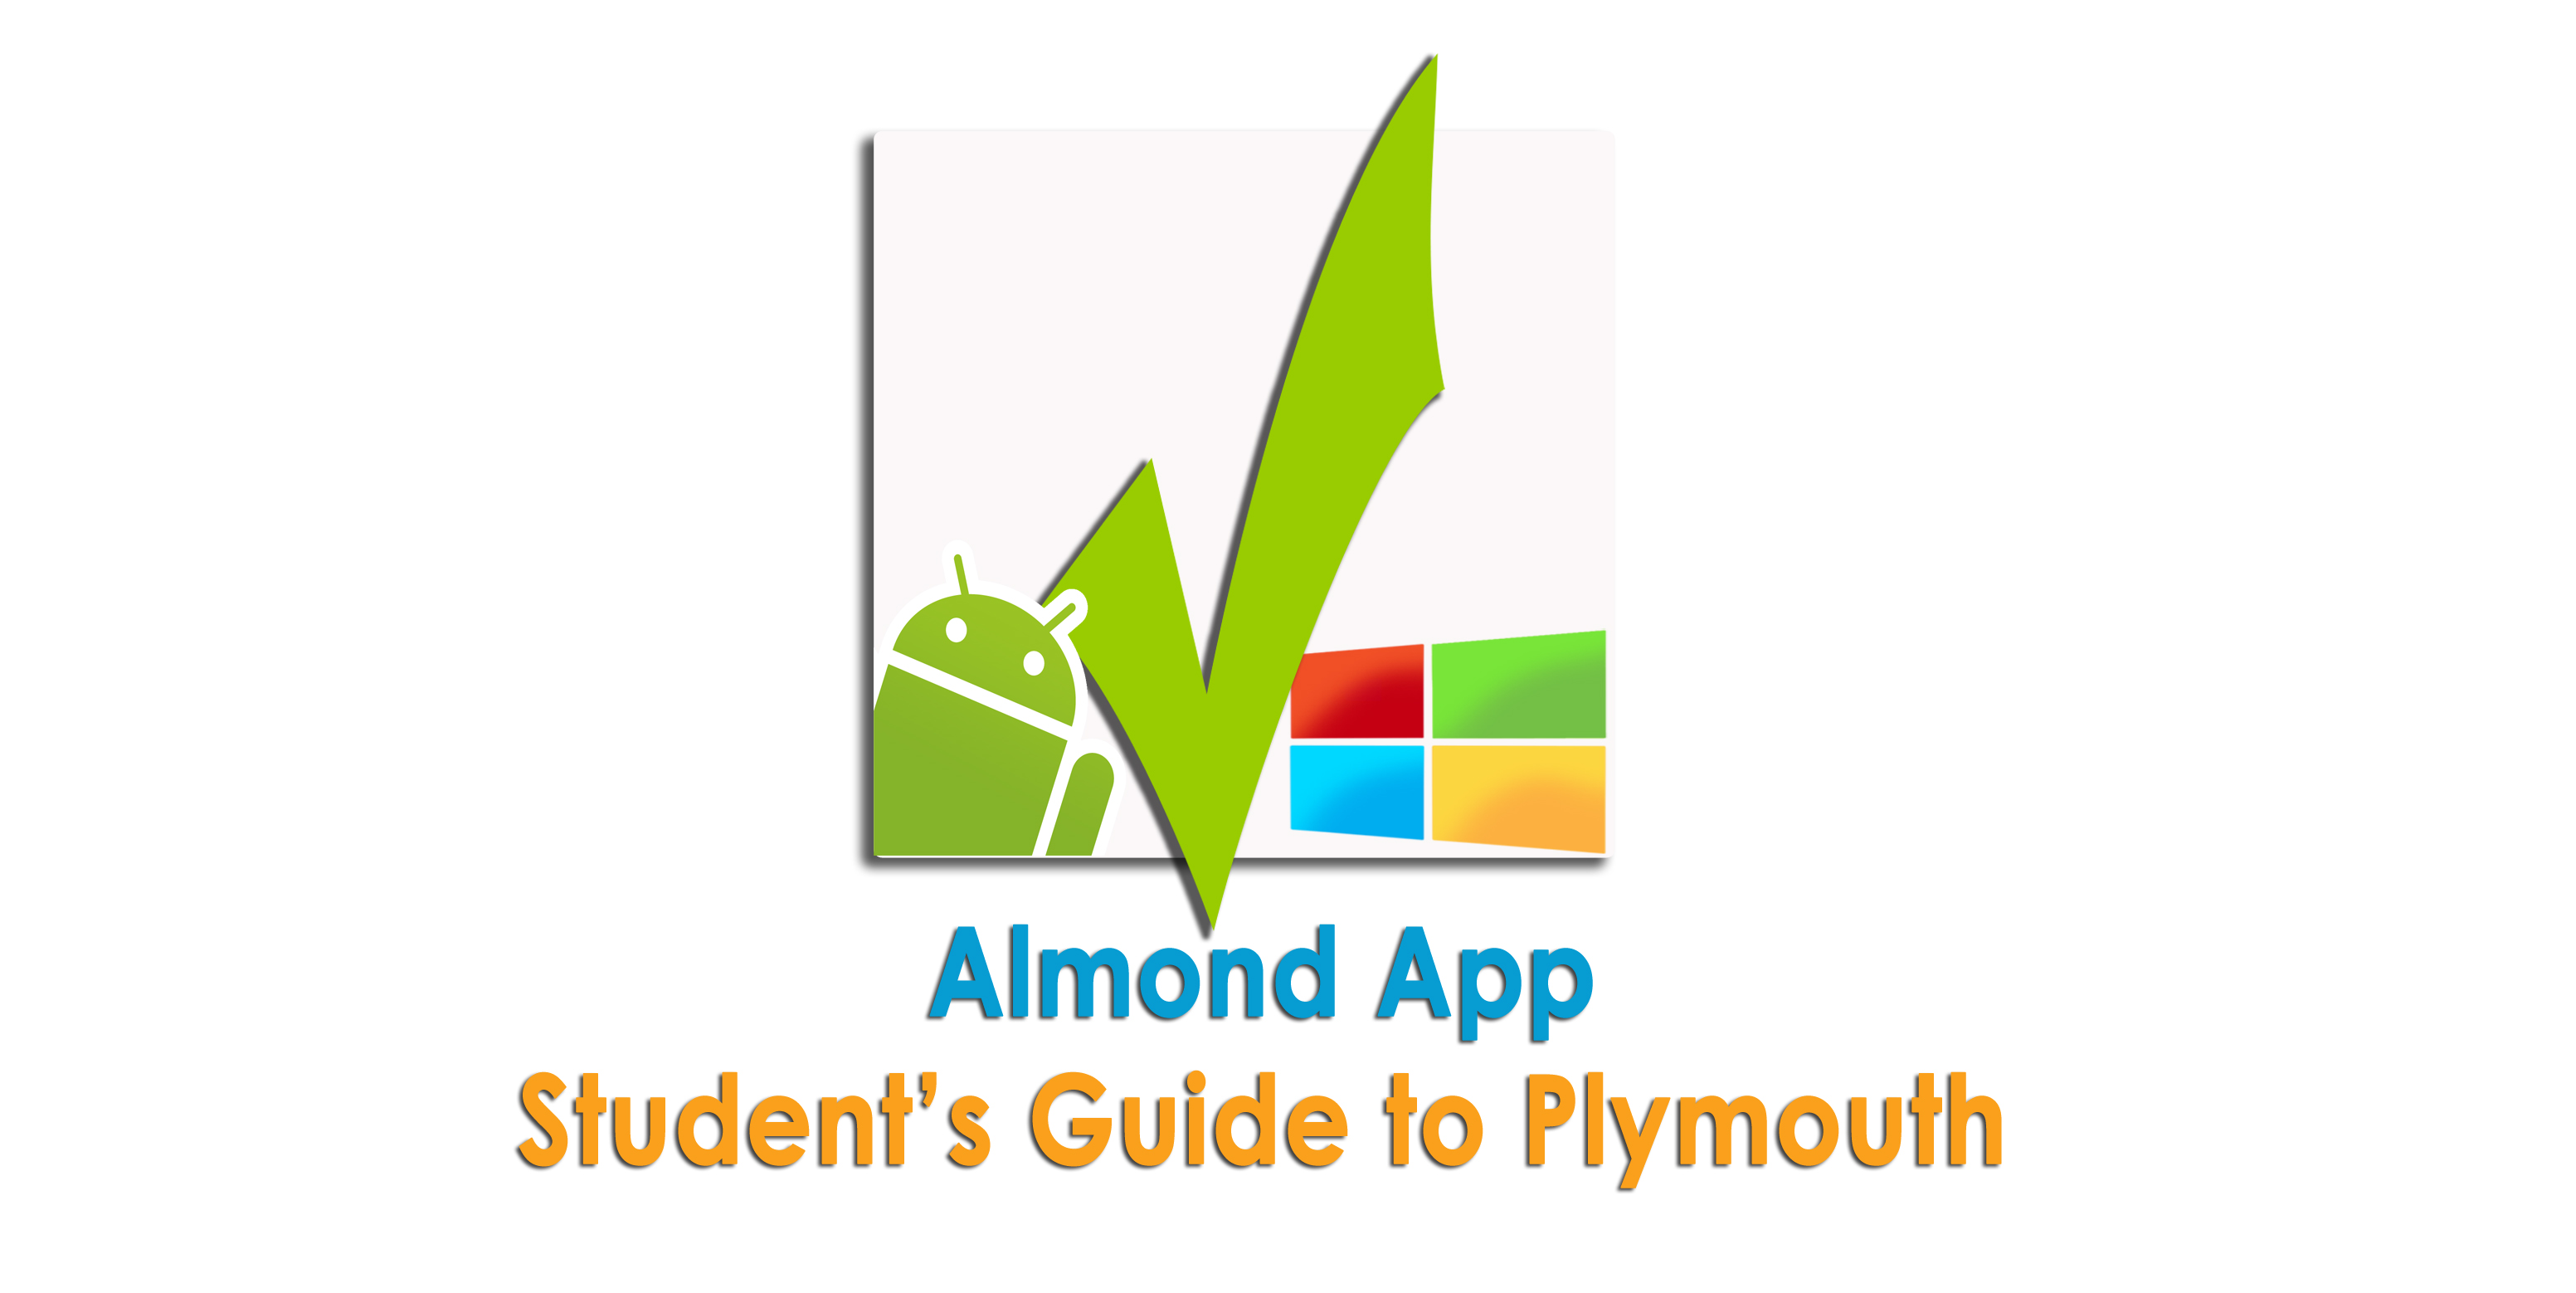 Almond App Student's Mobile Guide About Plymouth